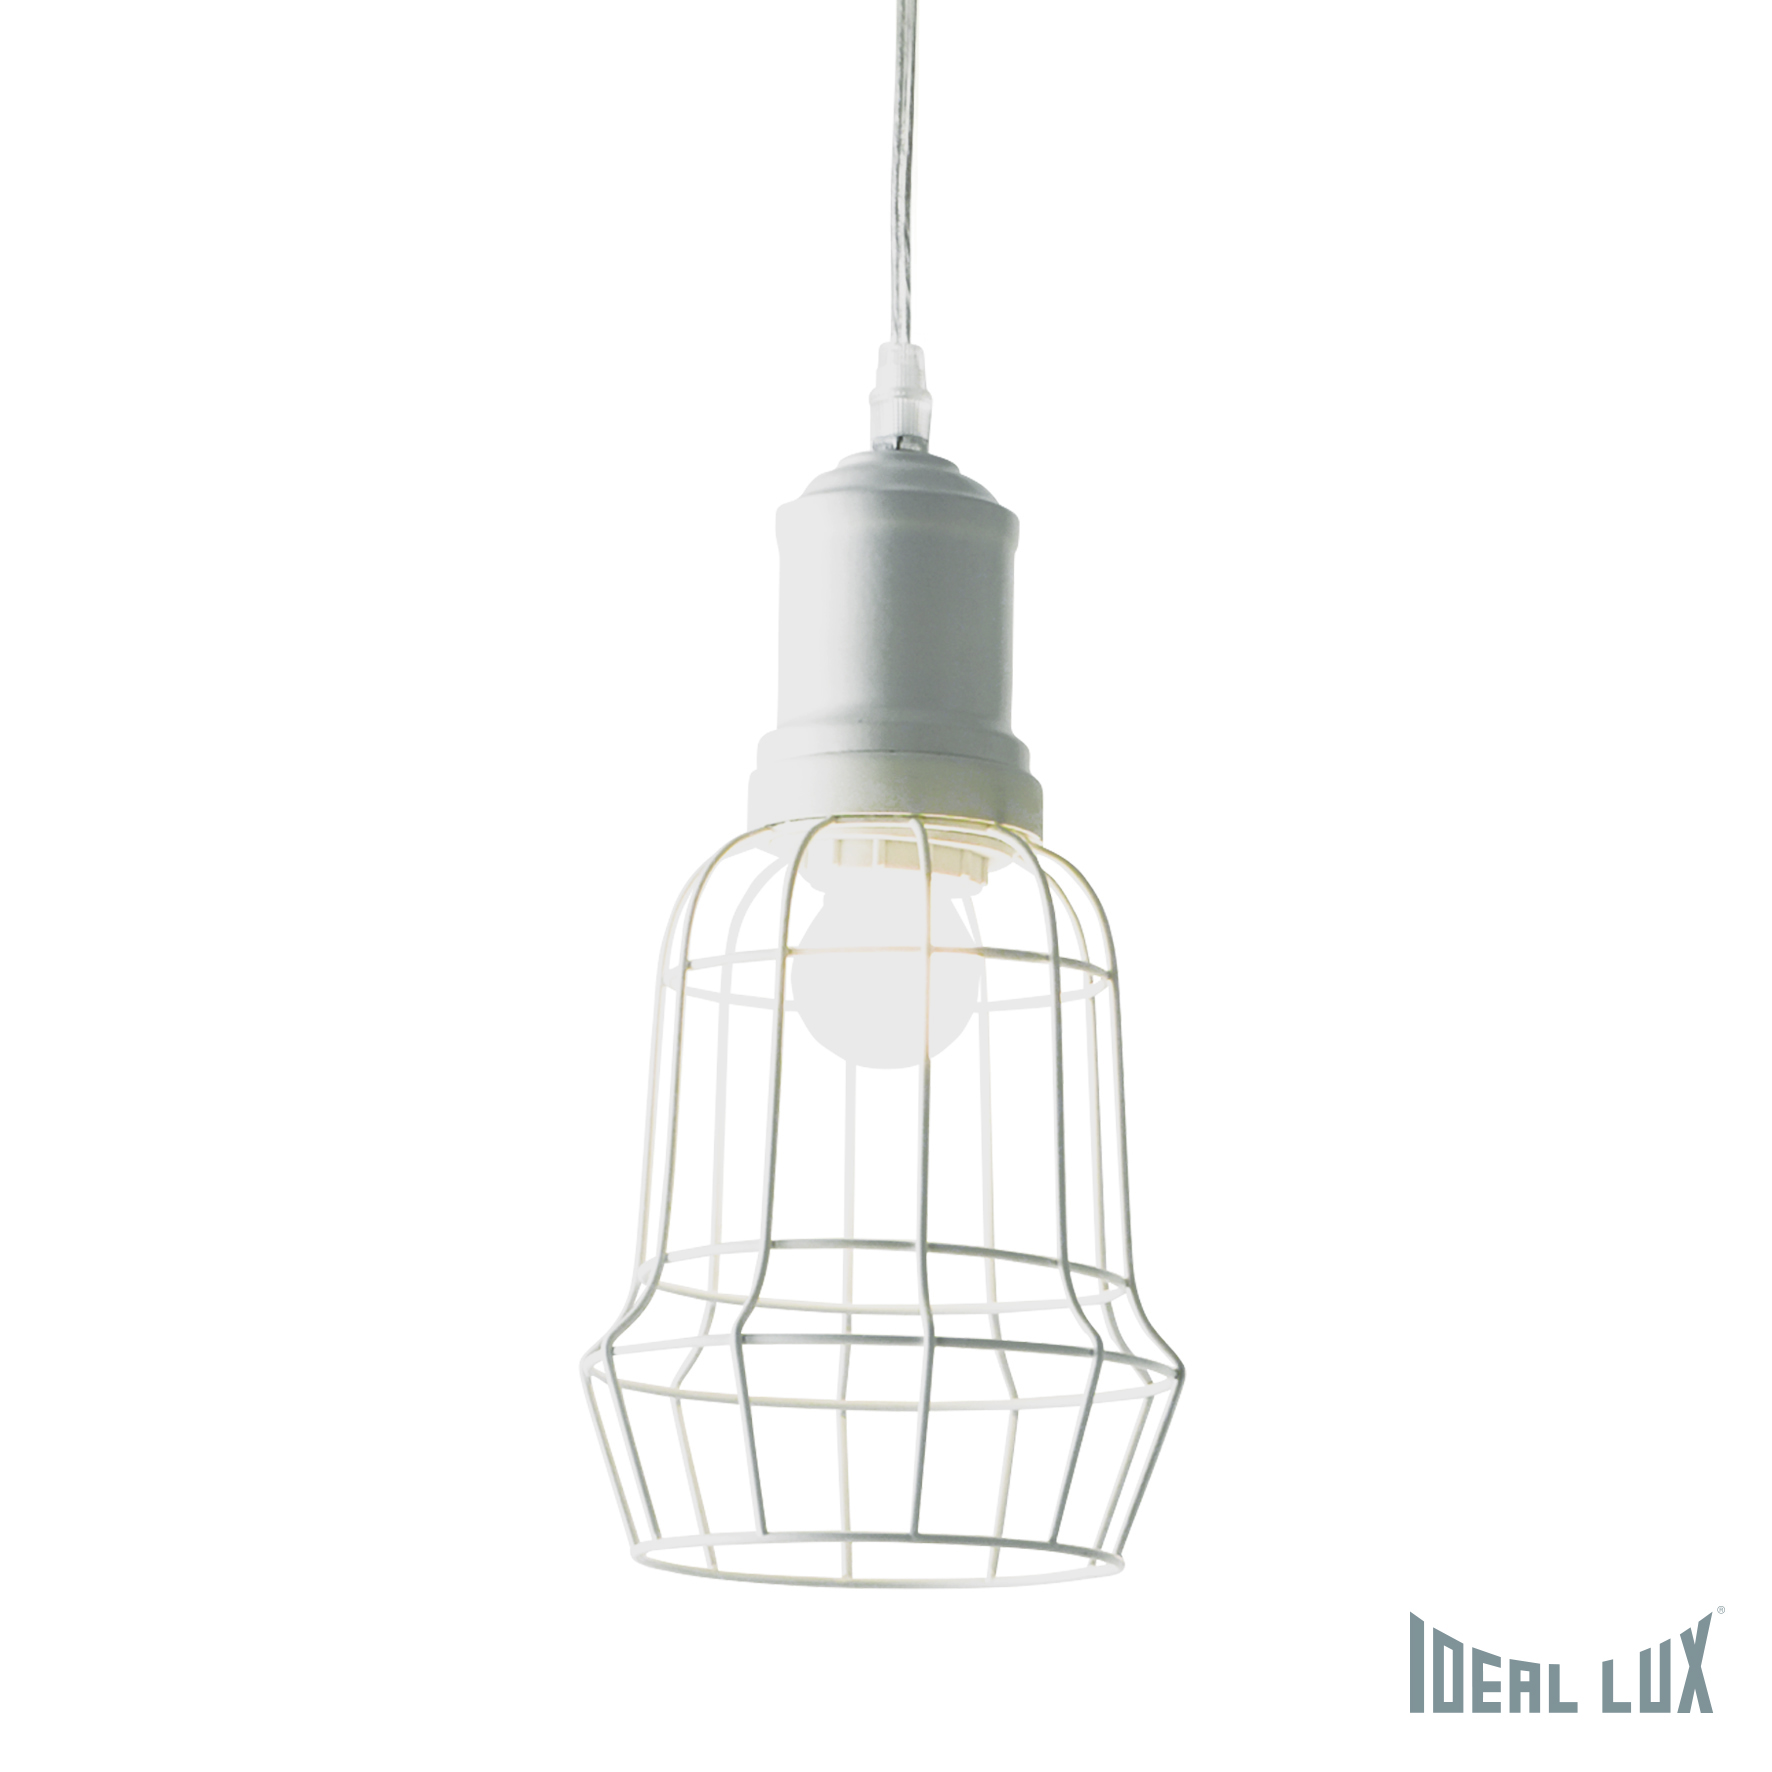 Светильник подвесной Ideal Lux Cage CAGE SP1 SQUARE BIANCO namat подвесной светильник ideal lux cage sp1 plate